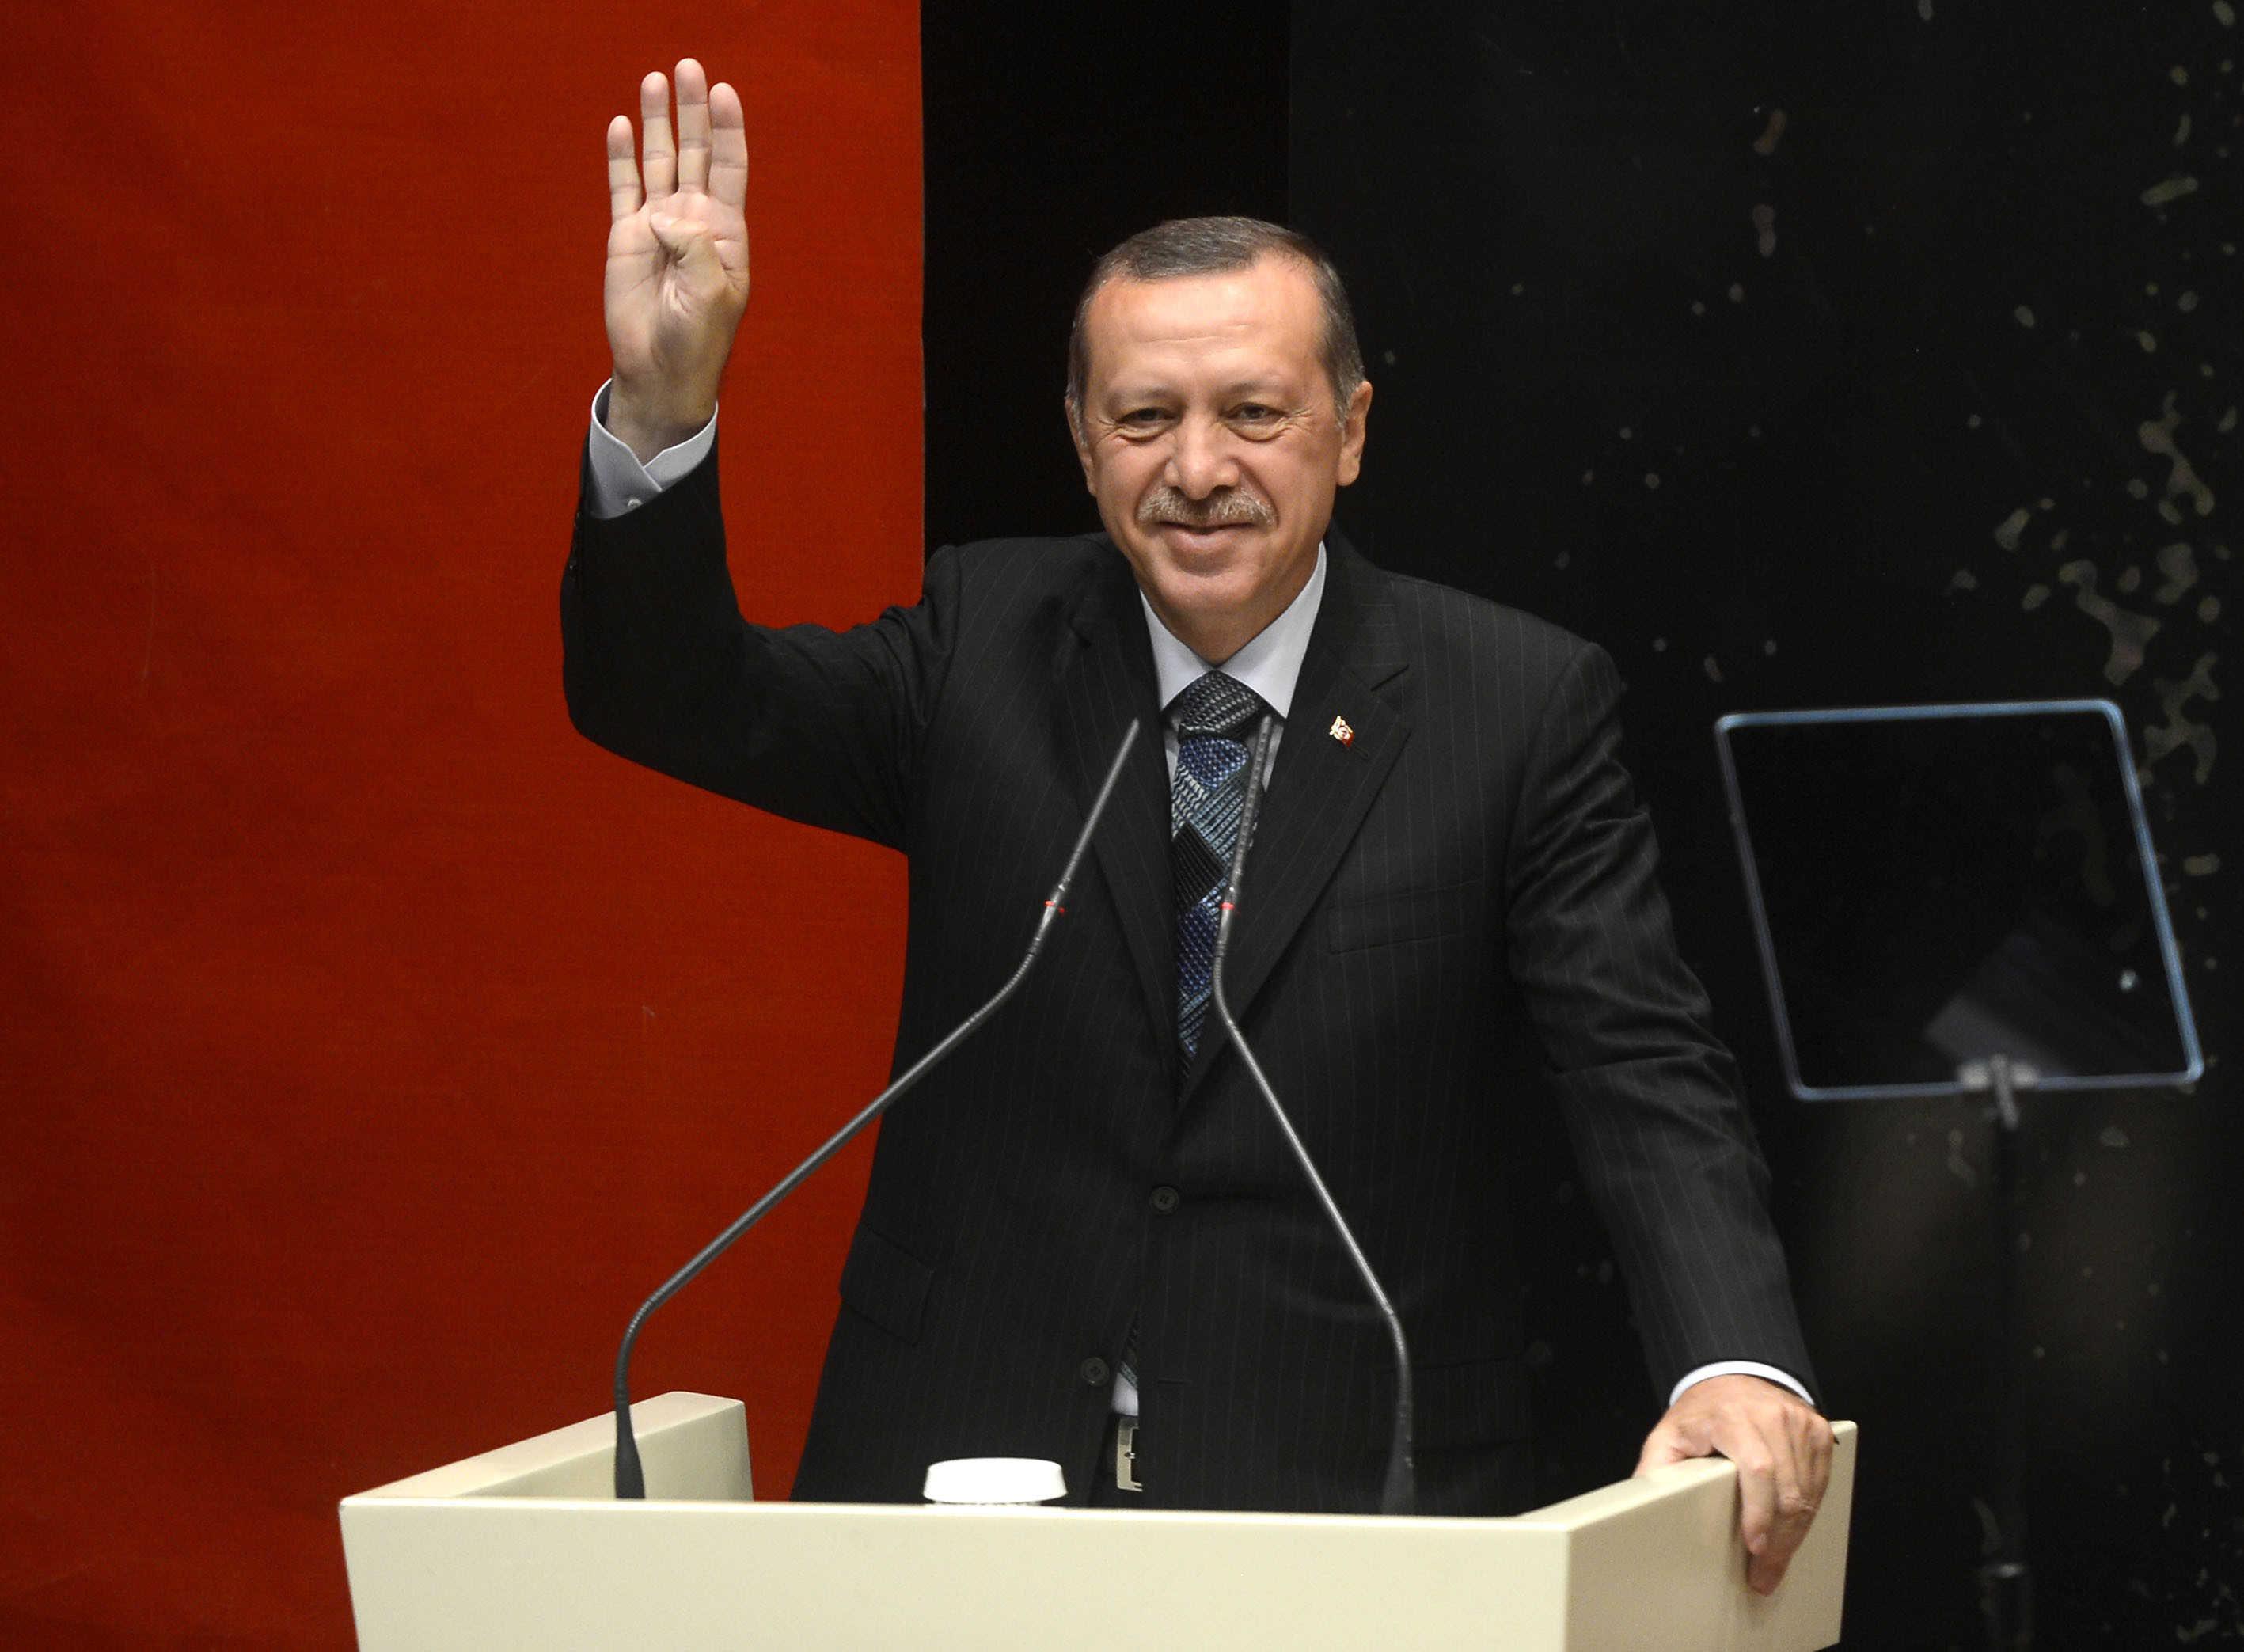 Turkey's president implicated in scheme to evade US sanctions